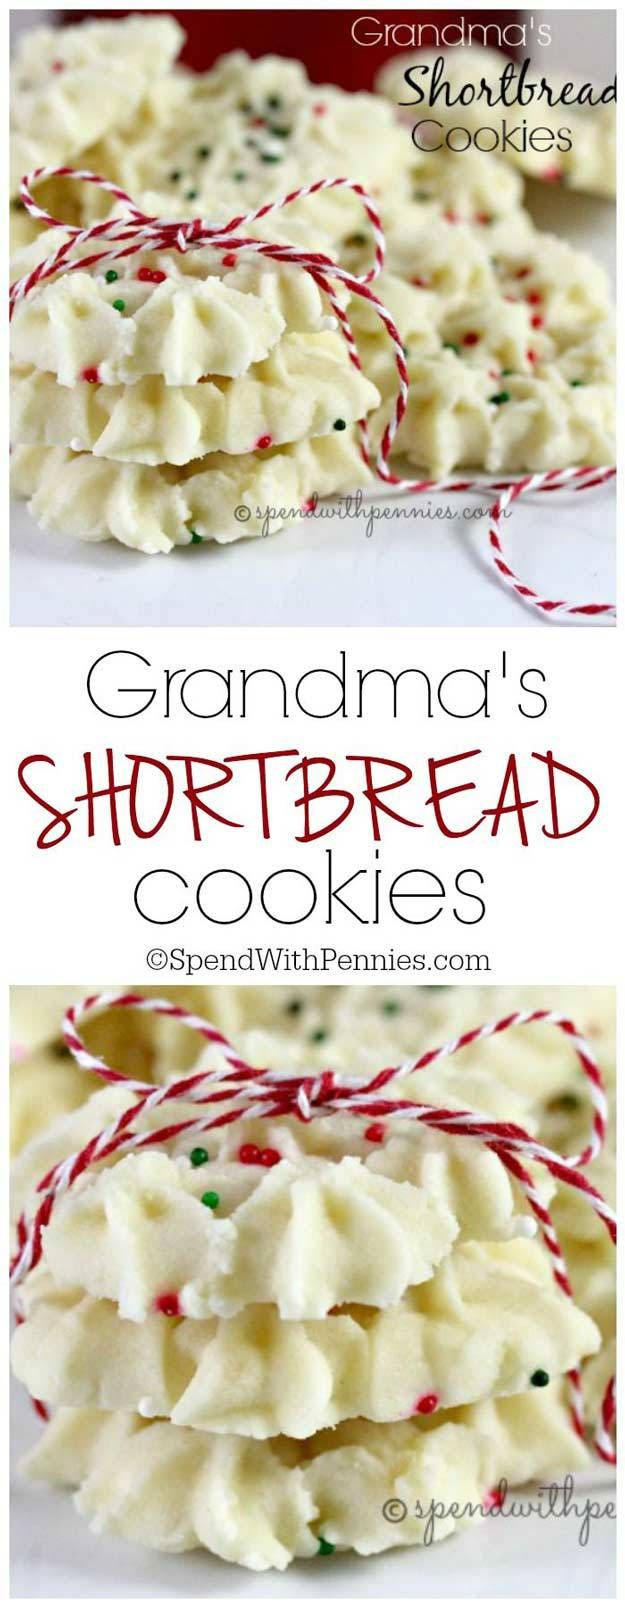 Grandma's Shortbread Cookies Recipe via Spend With Pennies - The BEST Christmas Cookies, Fudge, Candy, Barks and Brittles Recipes - Favorites for Holiday Treats Gift Plates and Goodies Bags!